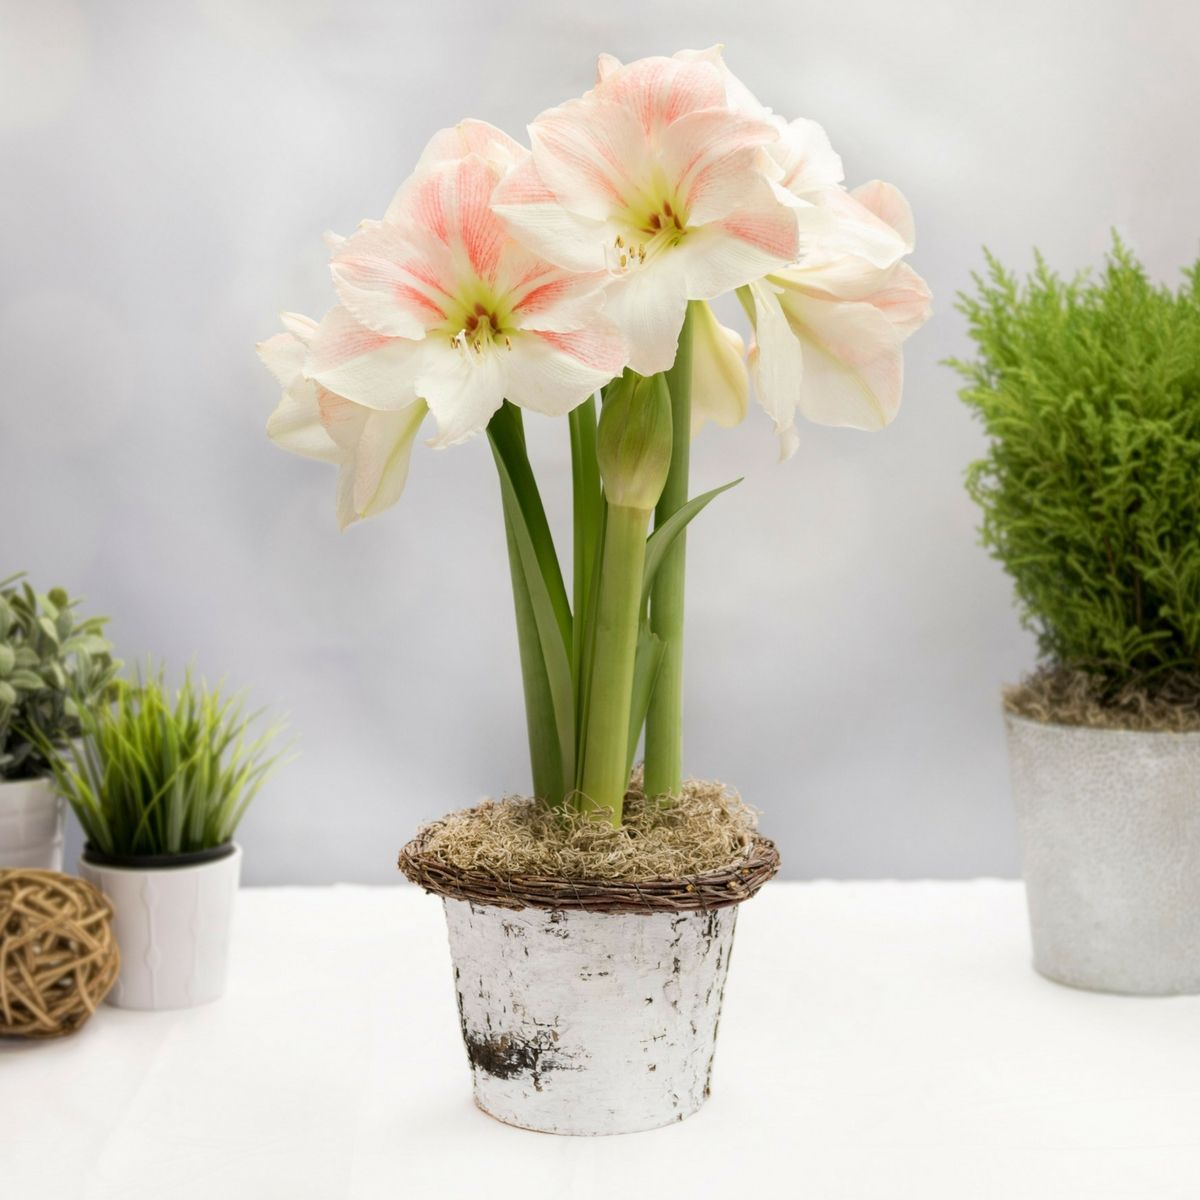 Giftkit Apple Blossom Is A Lovely Ivory And Pale Pink Amaryllis A Classic That S Treasured For Its Delicate Color Amaryllis Apple Blossom Pretty Flowers